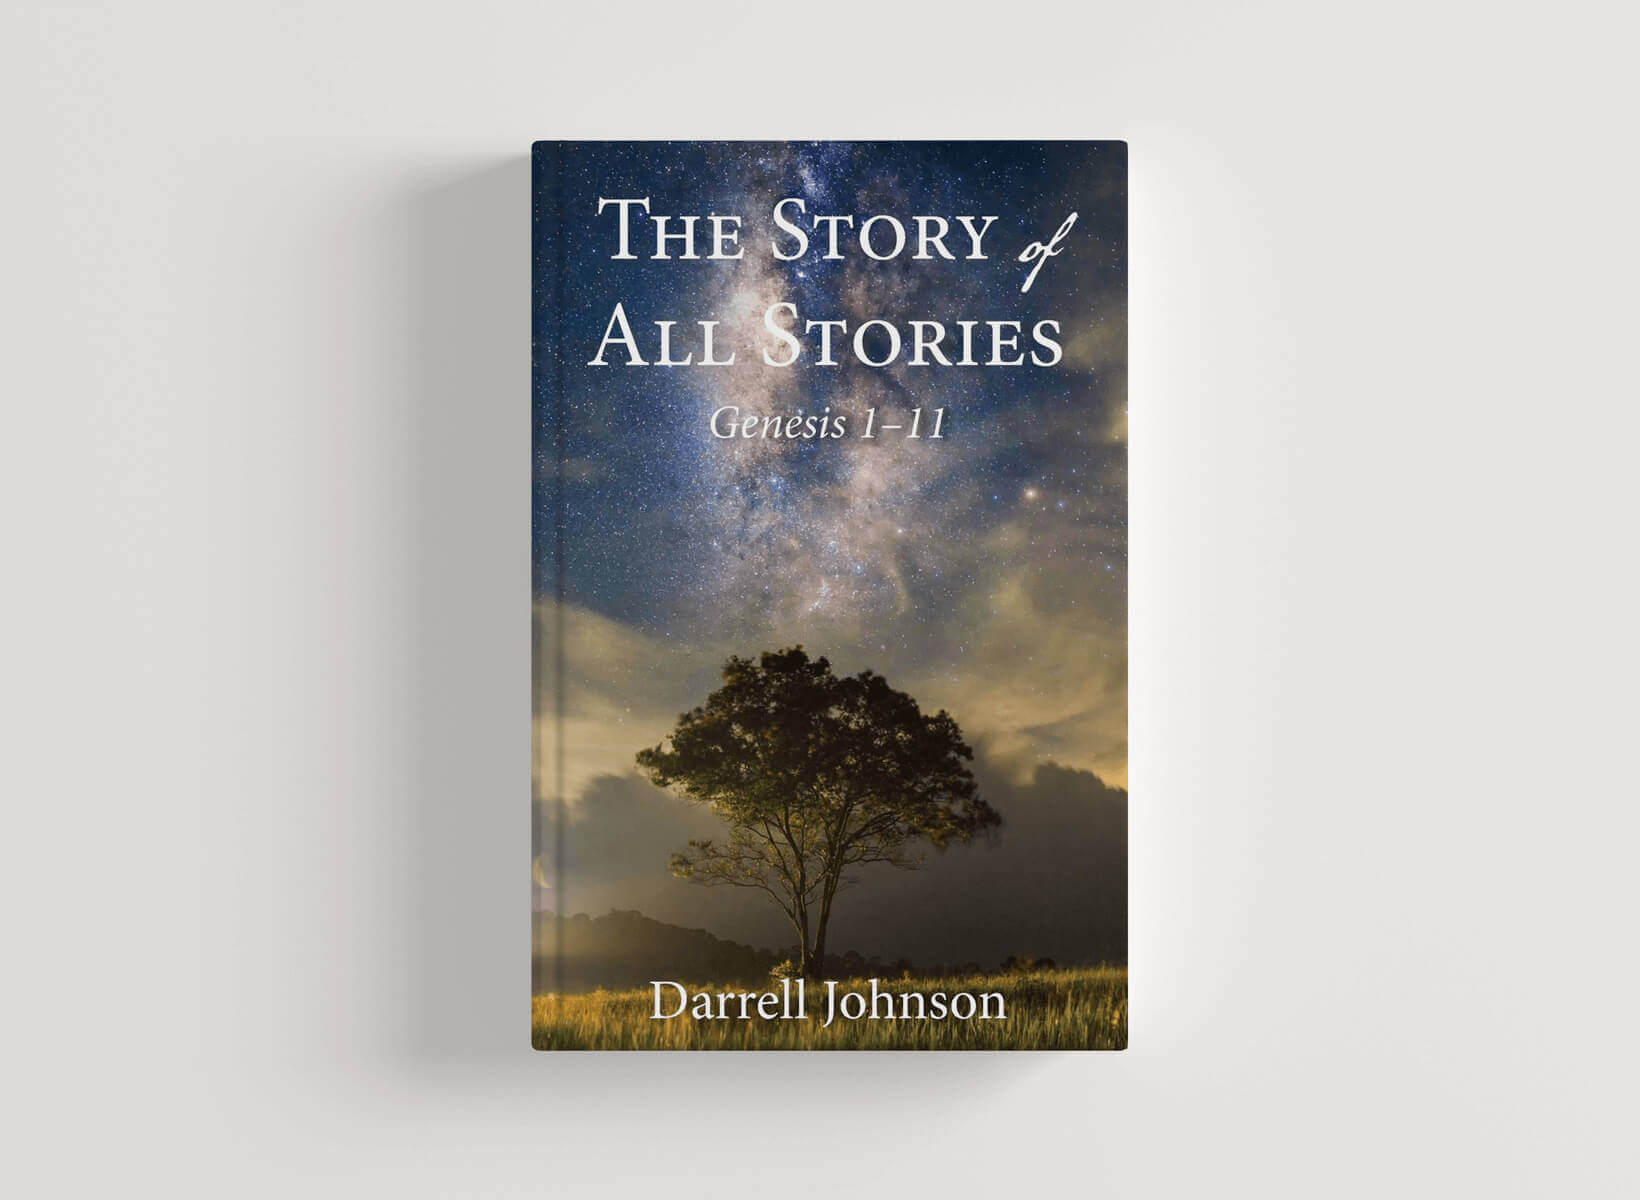 The Story of All Stories: Genesis 1-11